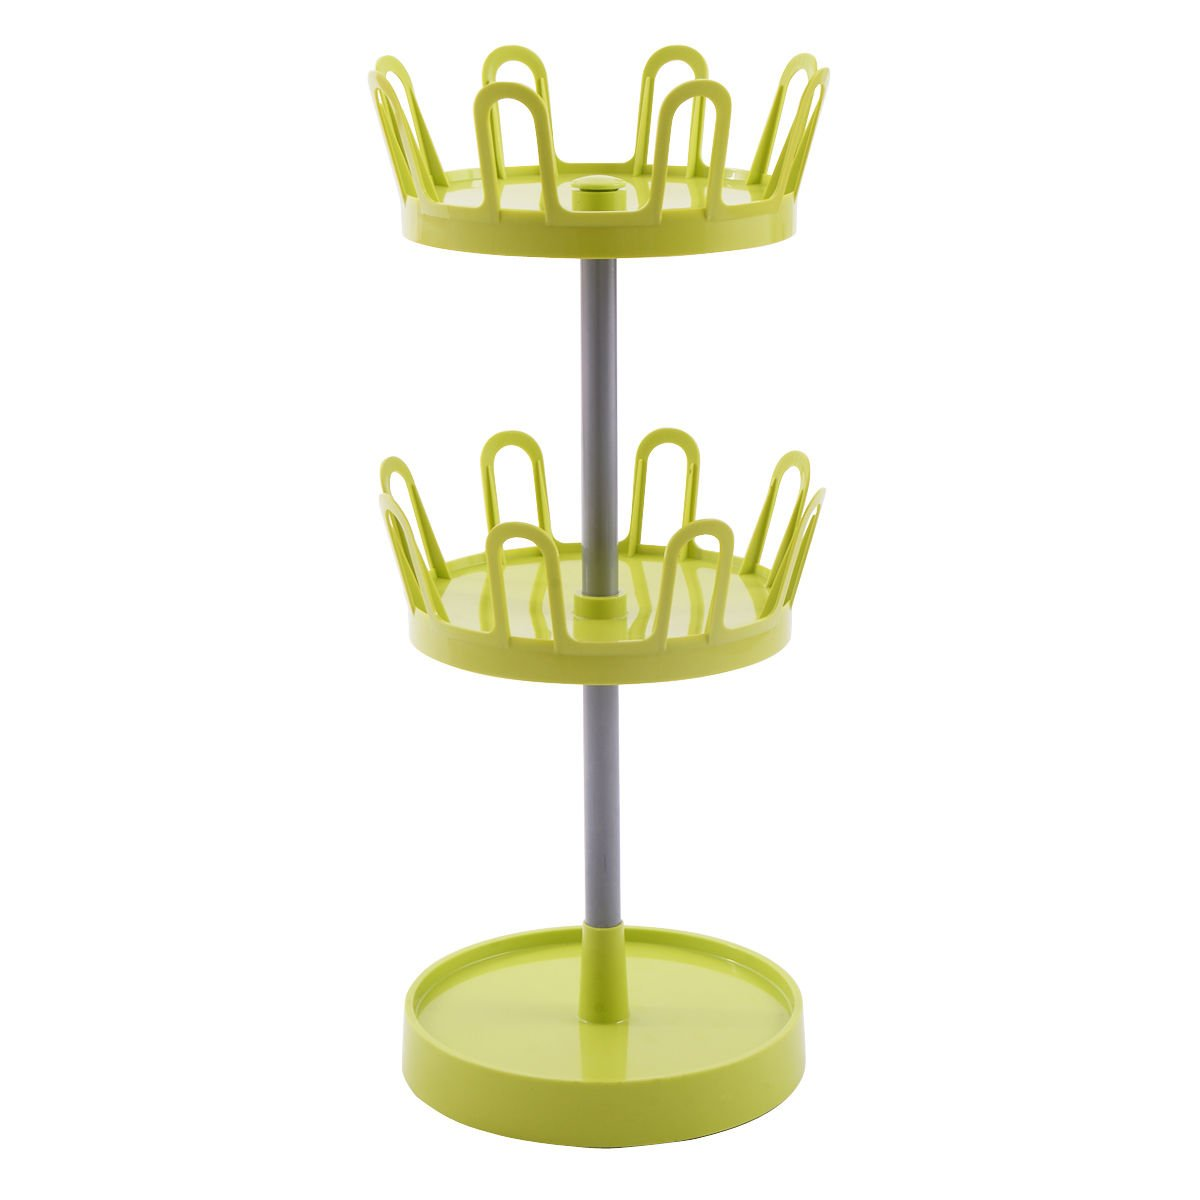 Shoe Rack Tree 2 Tier 8 Pairs Upright Revolving Organizer Stand Dorm Home Green by billionese